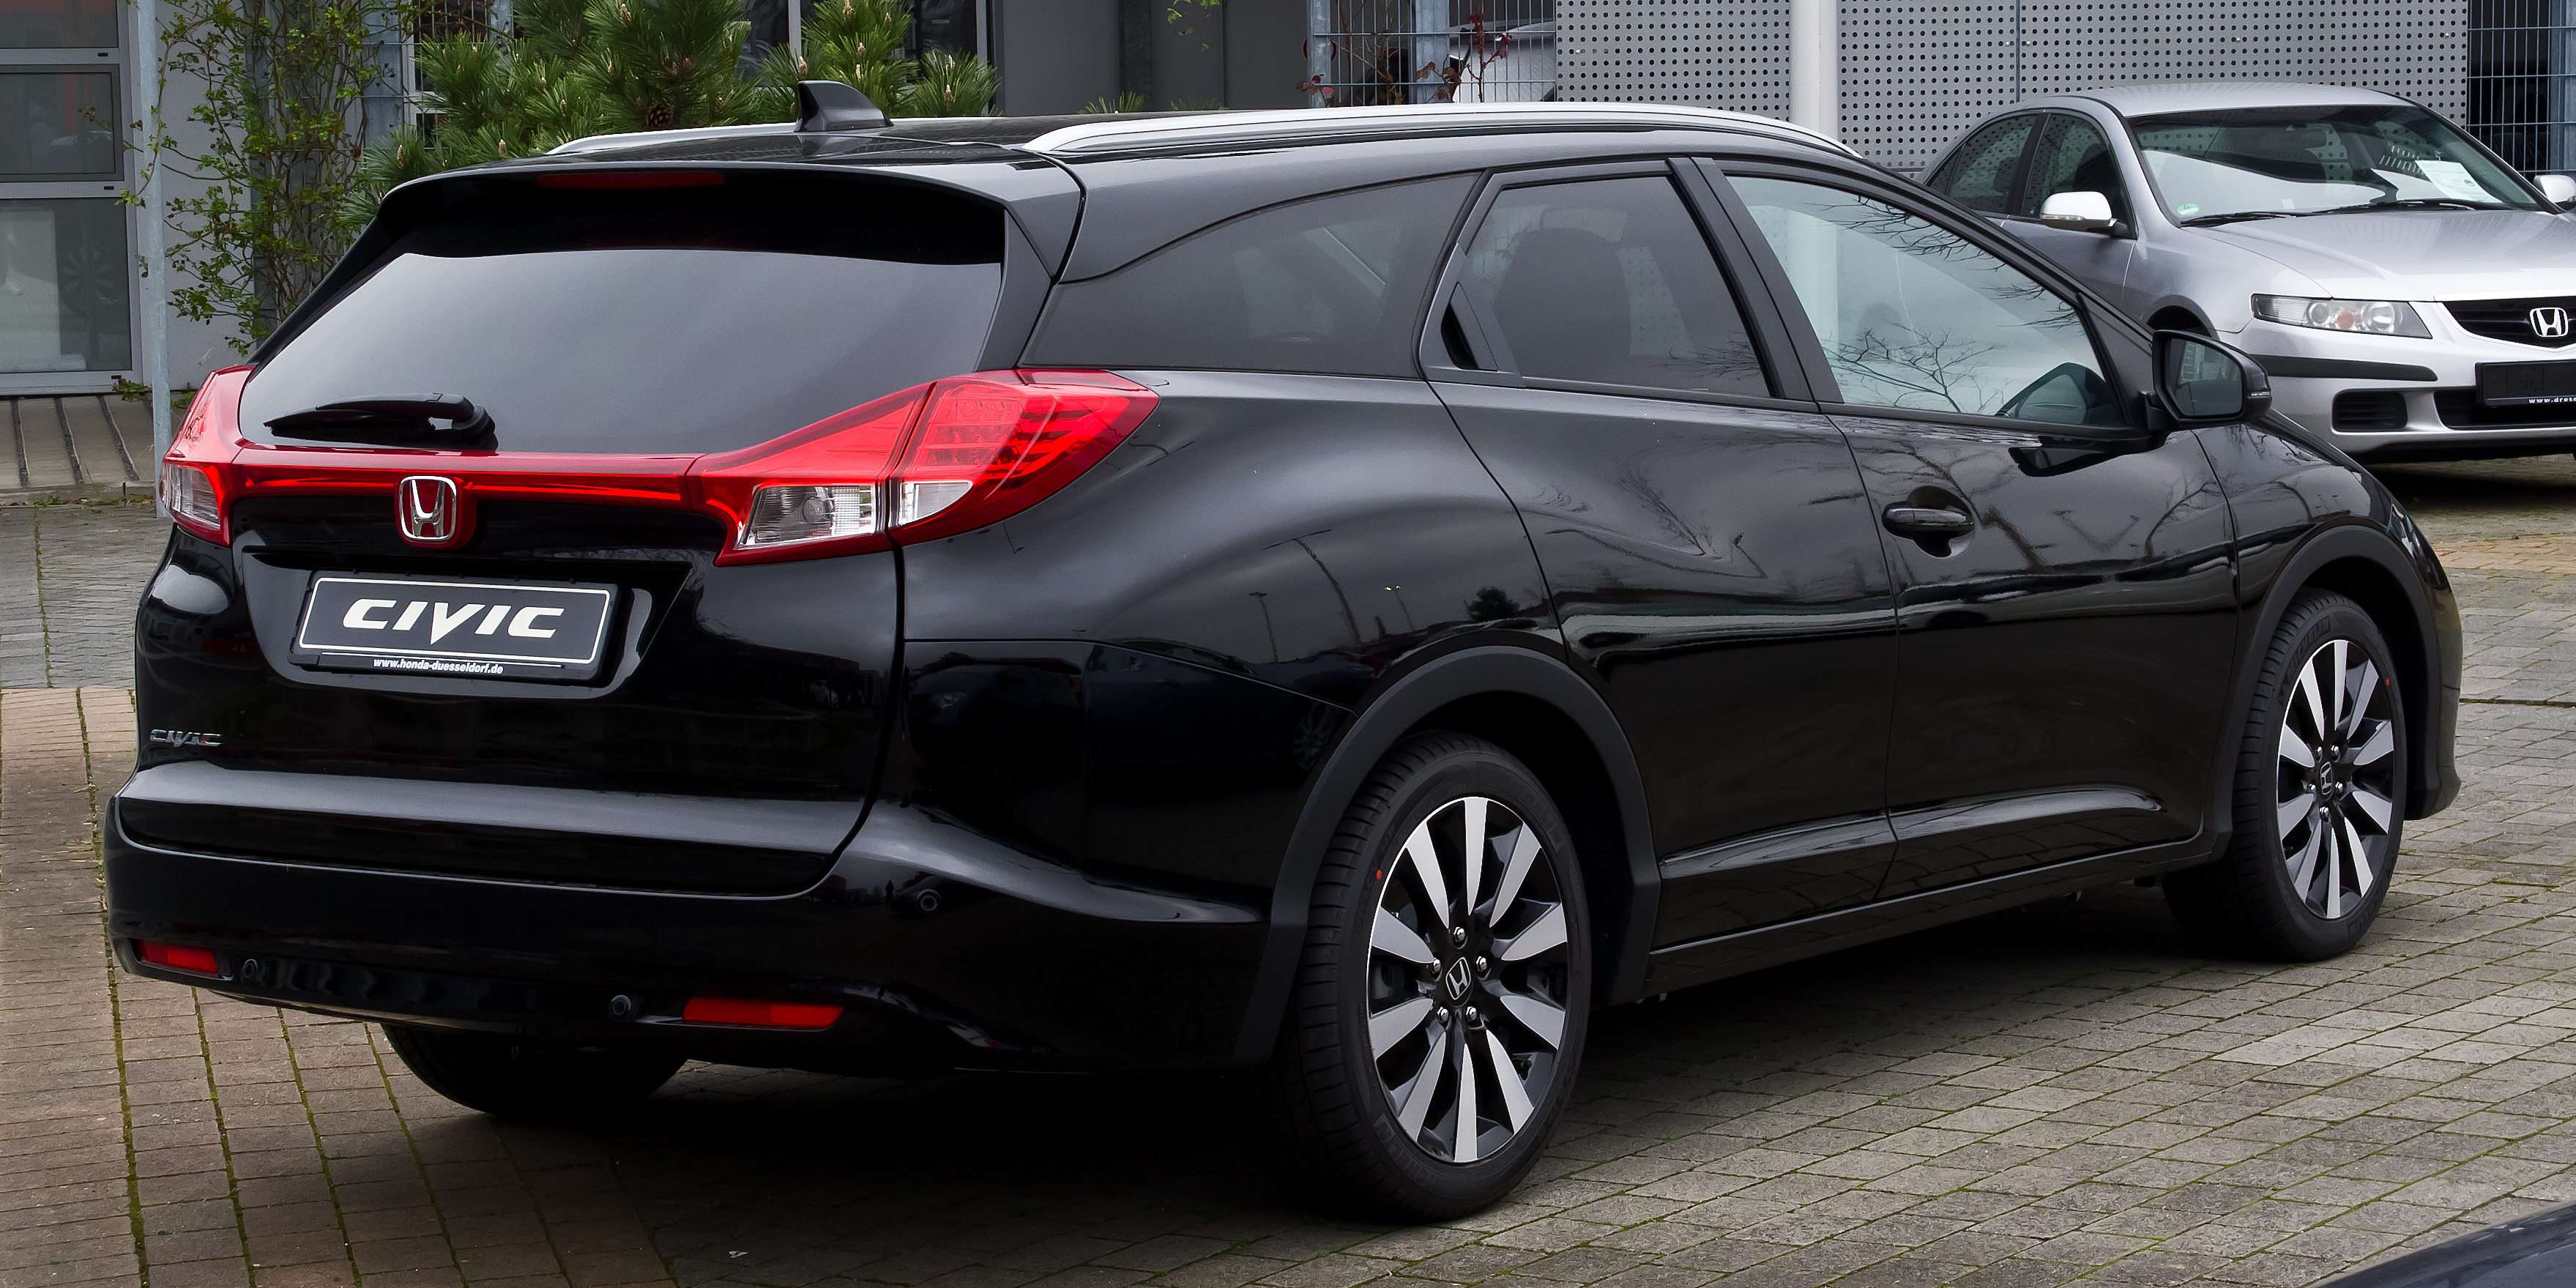 Accord V Touring Curb Weight